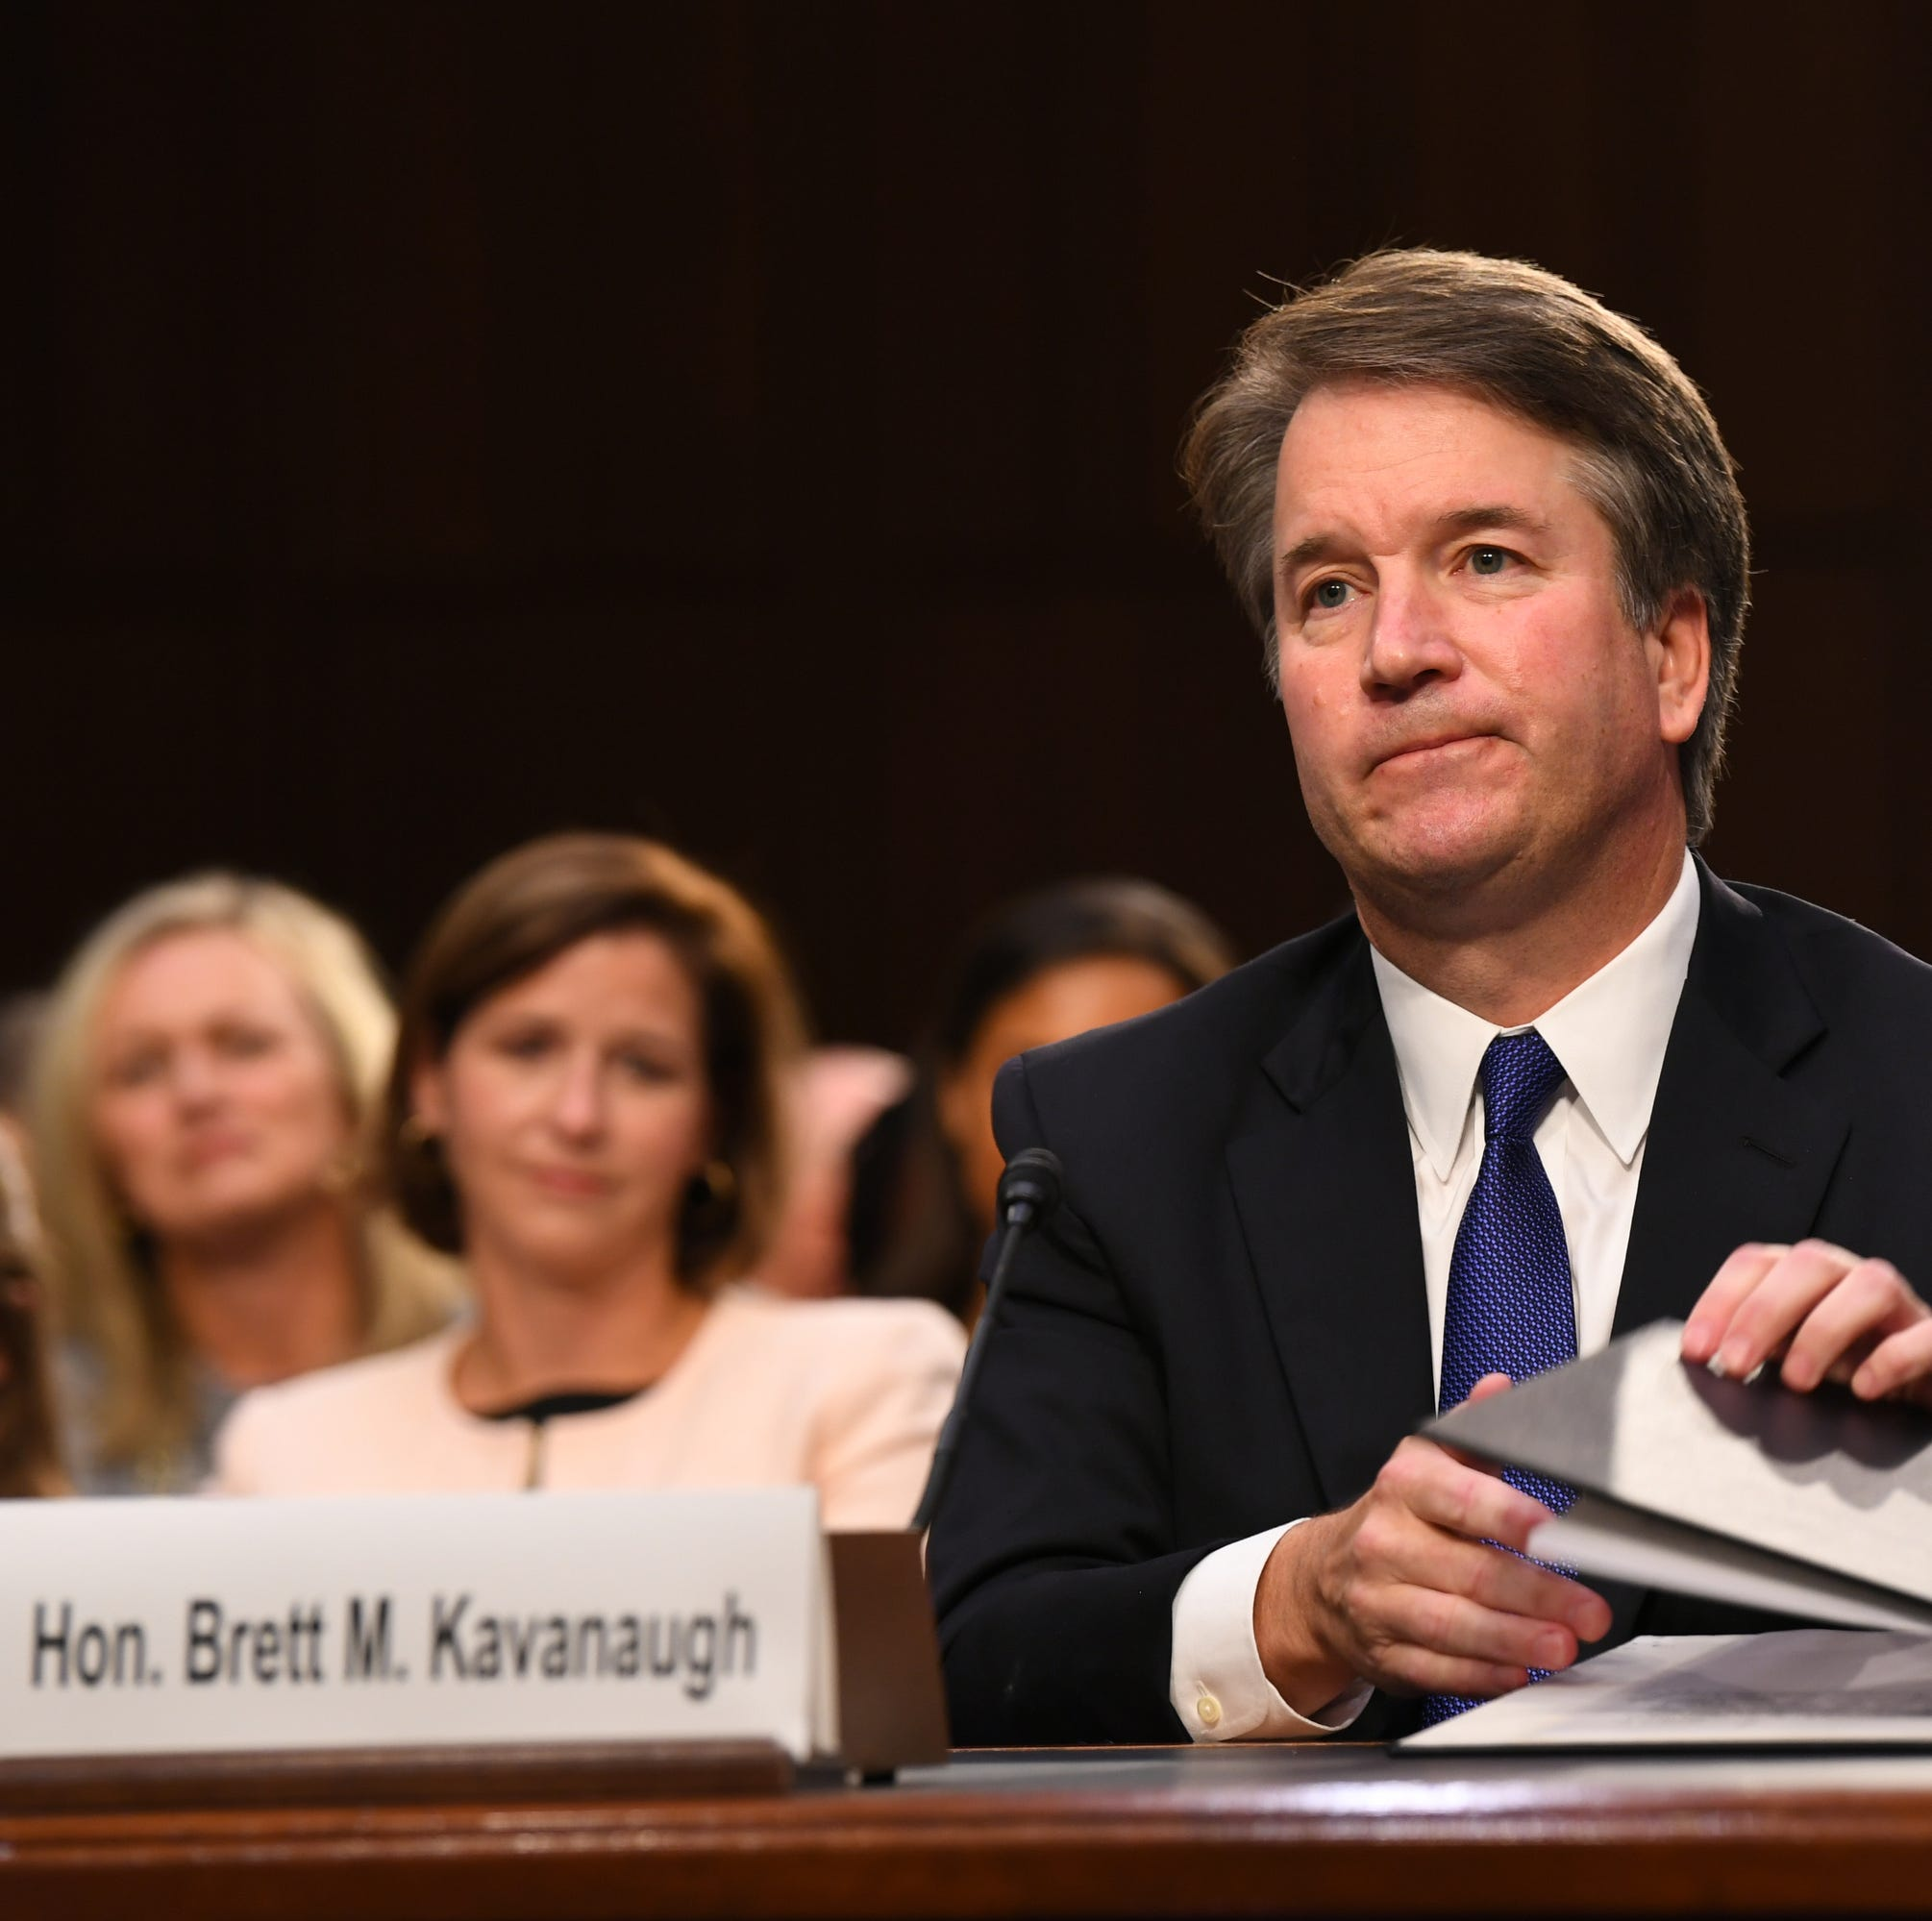 Kavanaugh accuser Christine Ford willing to testify before Senate committee, lawyer says